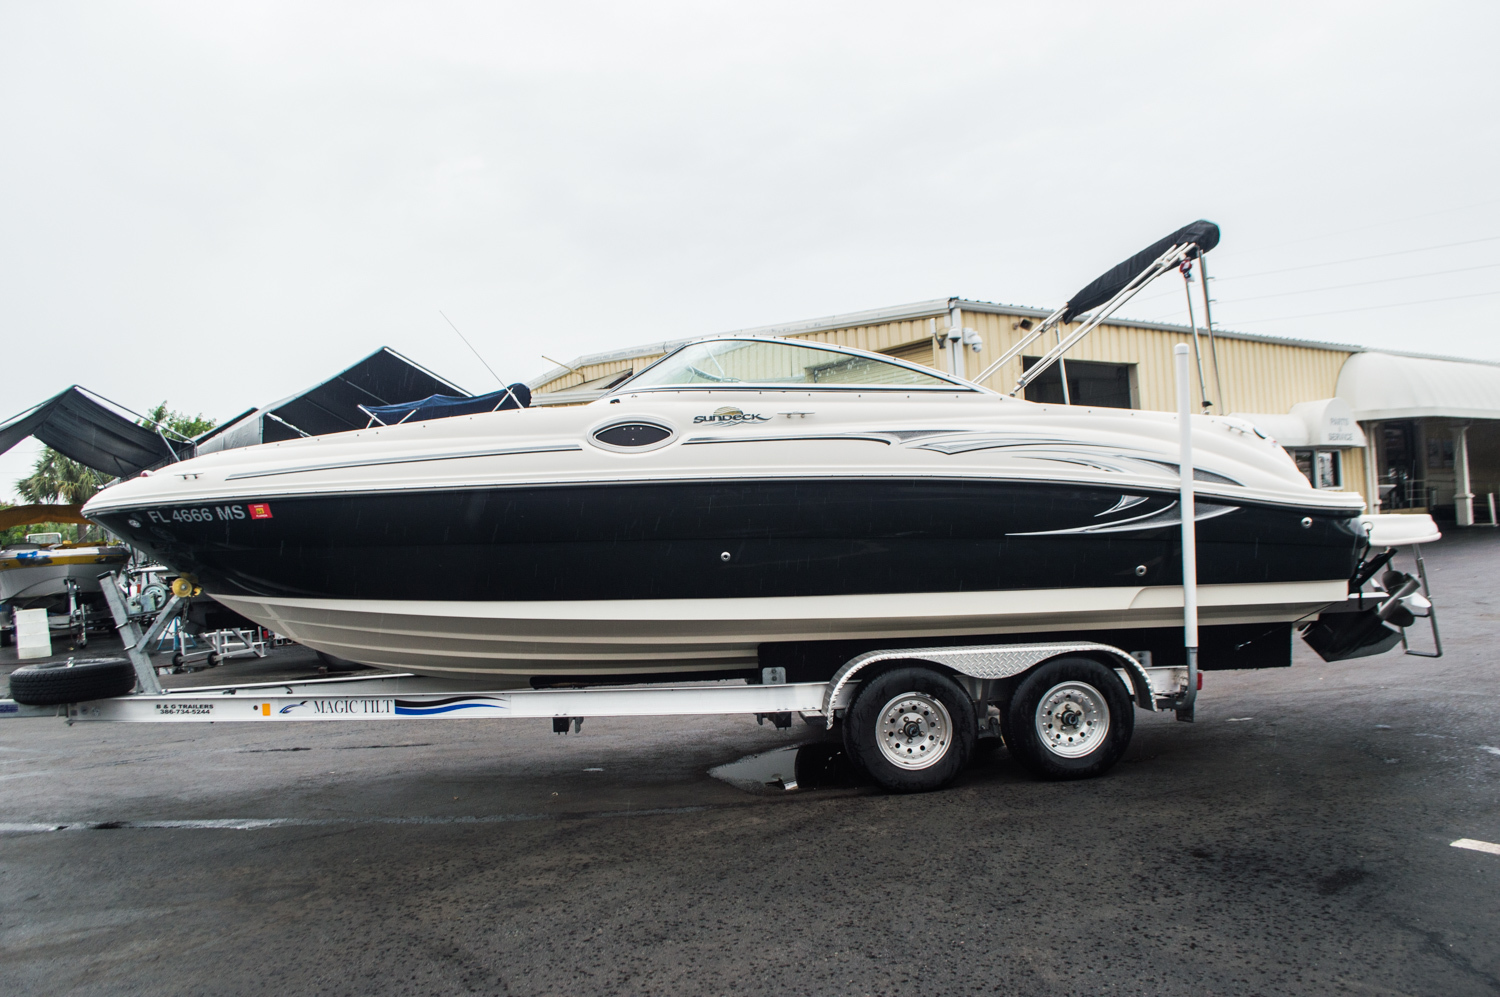 Thumbnail 4 for Used 2005 Sea Ray 240 Sundeck boat for sale in West Palm Beach, FL